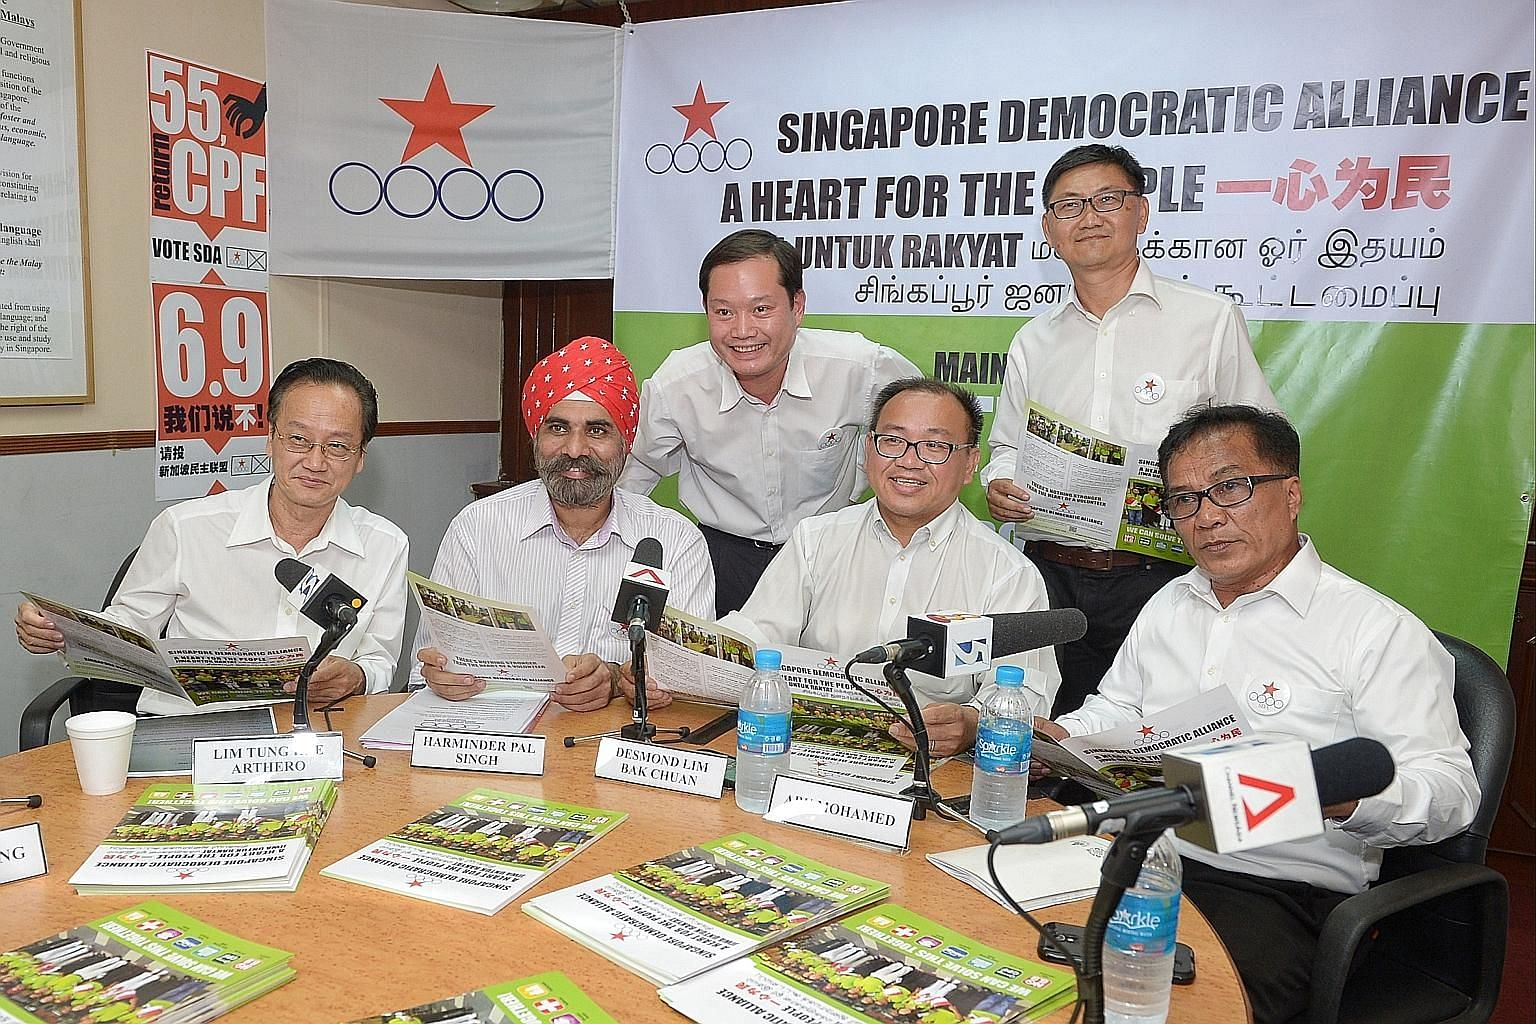 The SDA's Pasir Ris-Punggol GRC team members (from left) Arthero Lim Tung Hee, Harminder Pal Singh, Ong Teik Seng, Desmond Lim Bak Chuan, Wong Way Weng and Abu Mohamed at the press conference yesterday. This is the third time the party is contesting